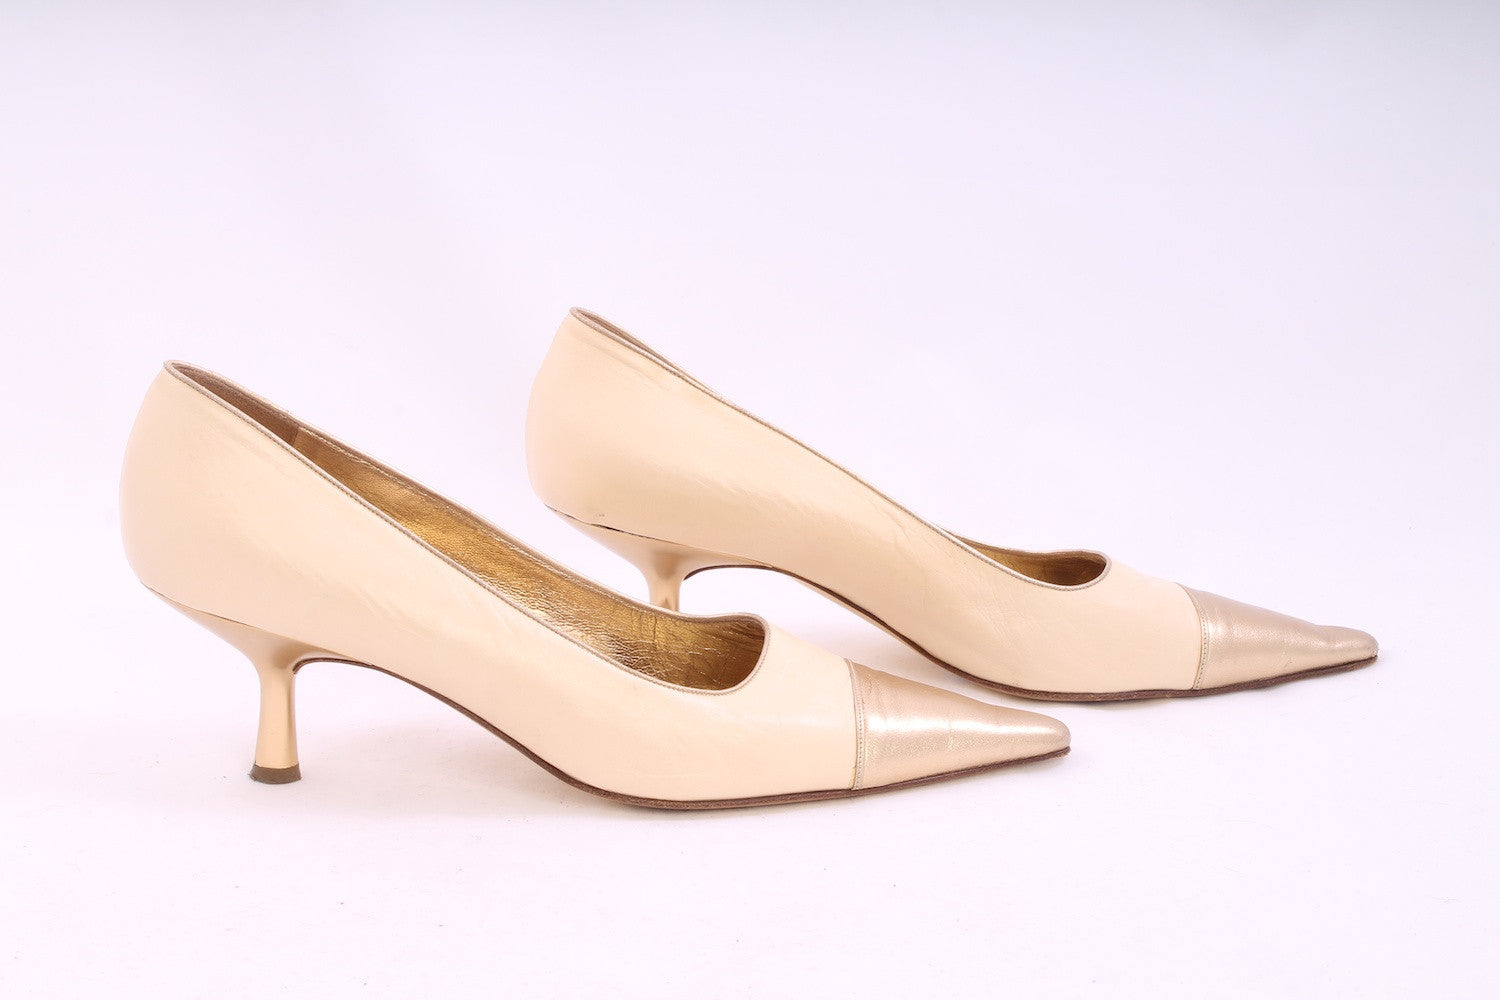 Pointed Toe Kitten Heel Pumps